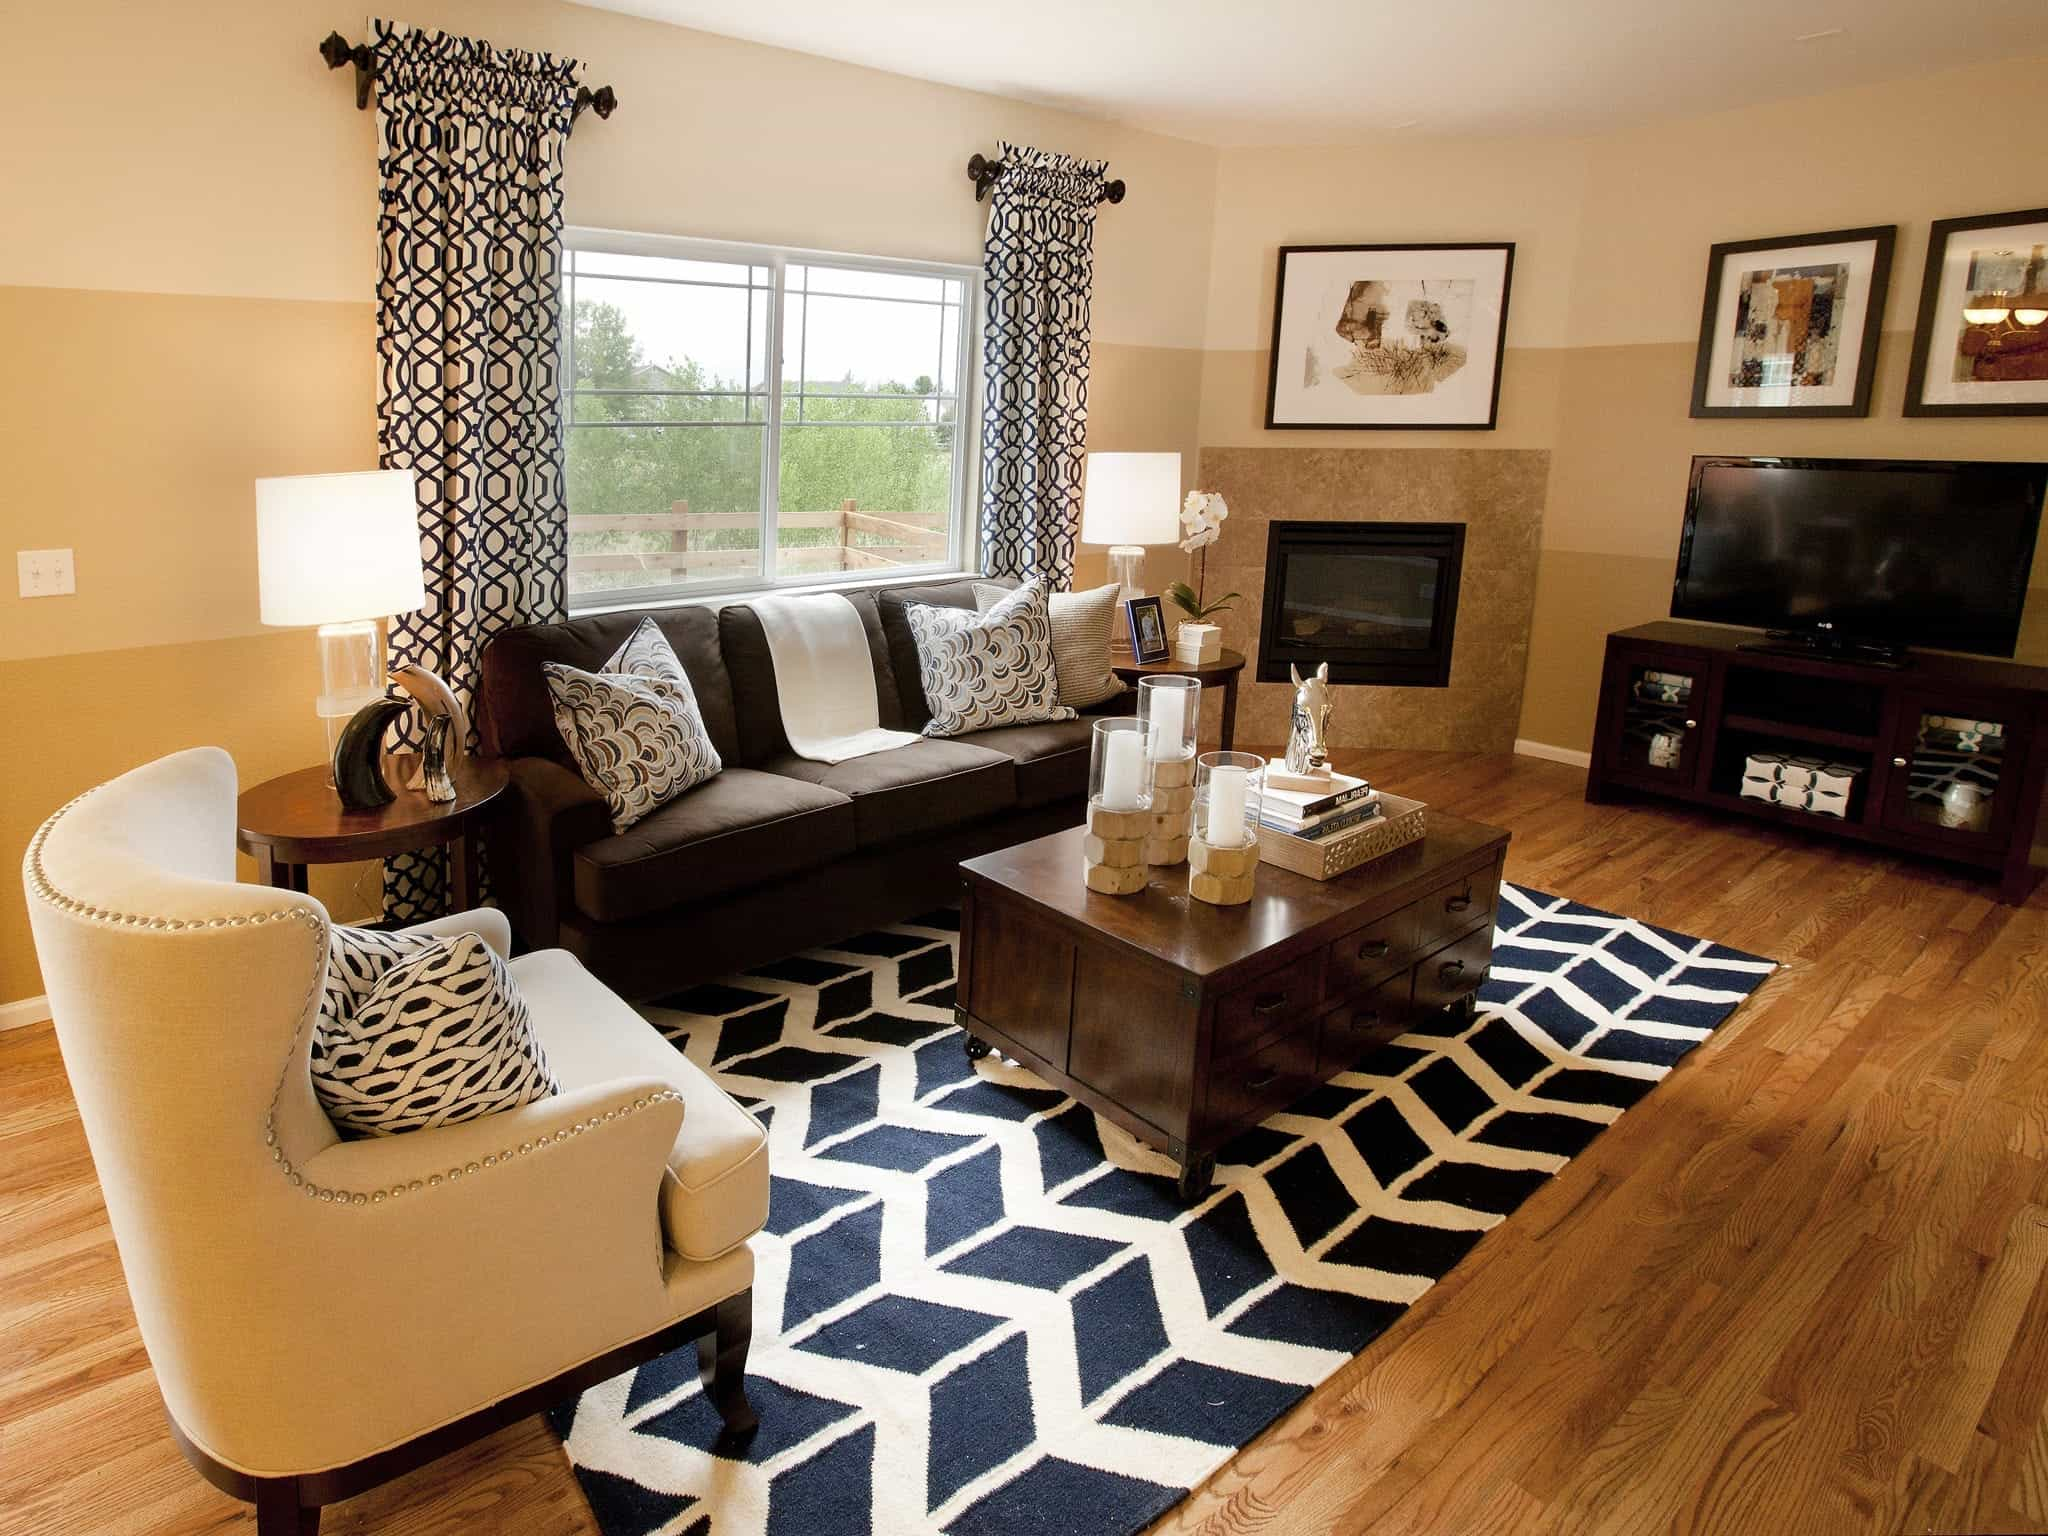 Contemporary Living Room Features A Corner Fireplace And Graphic Print Drapes And Rug (Photo 3 of 13)